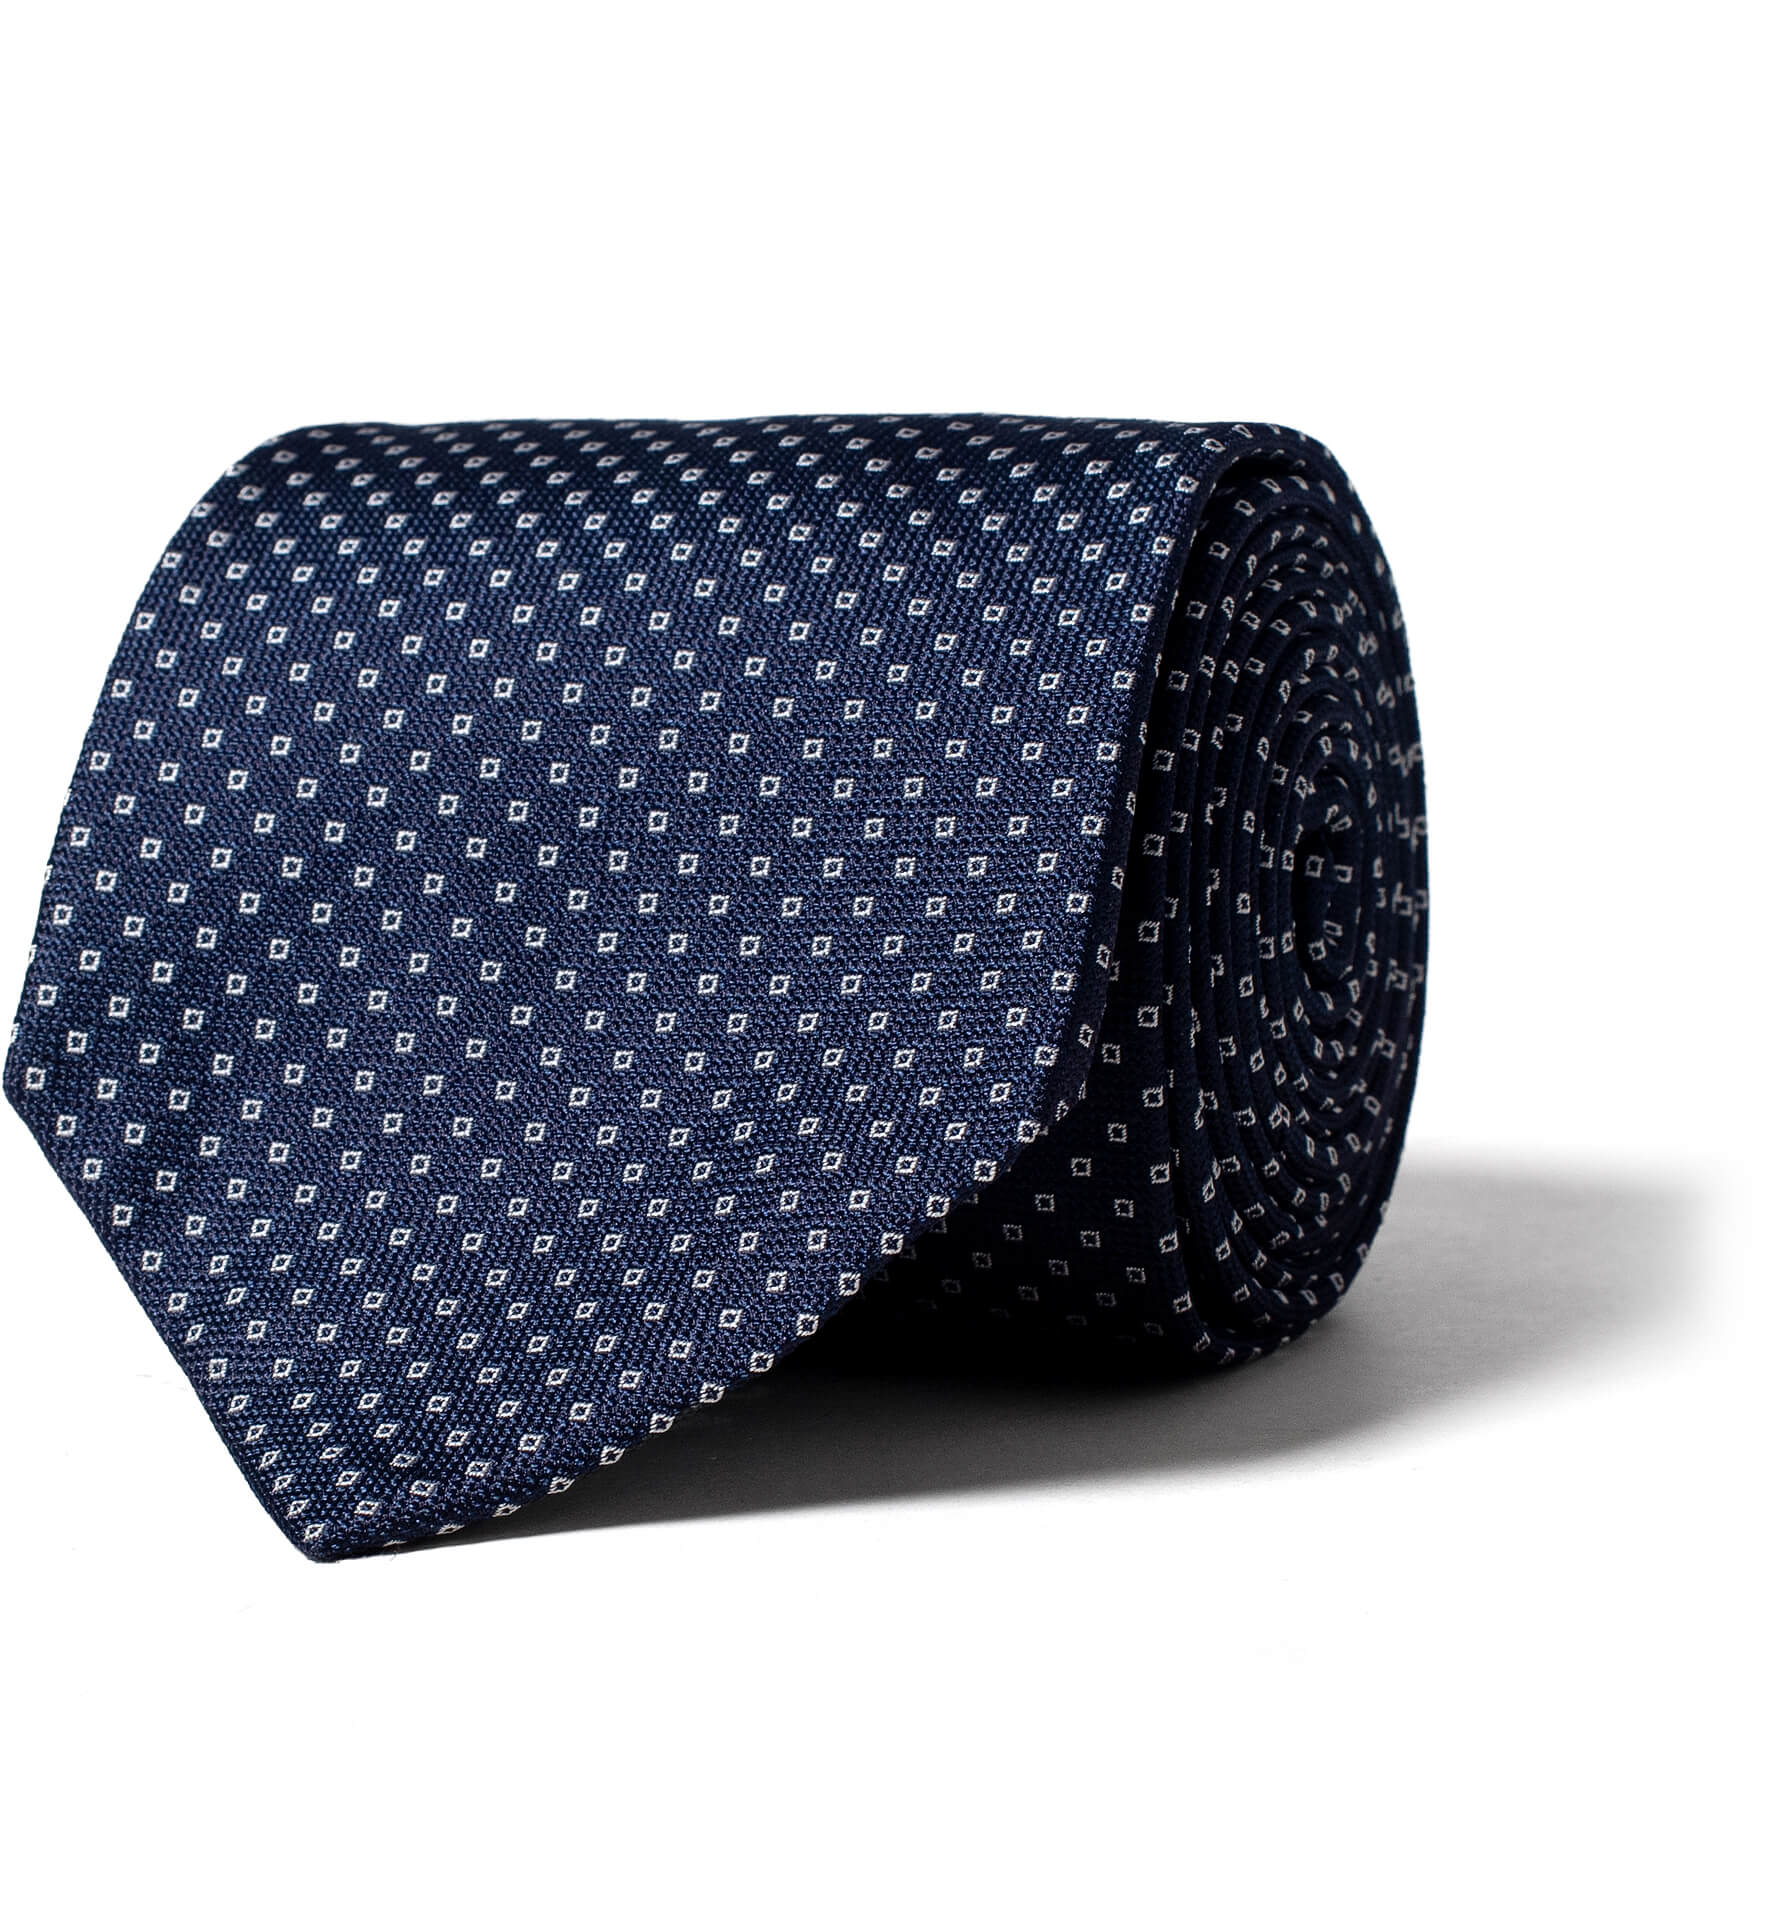 Zoom Image of Navy Small Square Print Textured Silk Tie